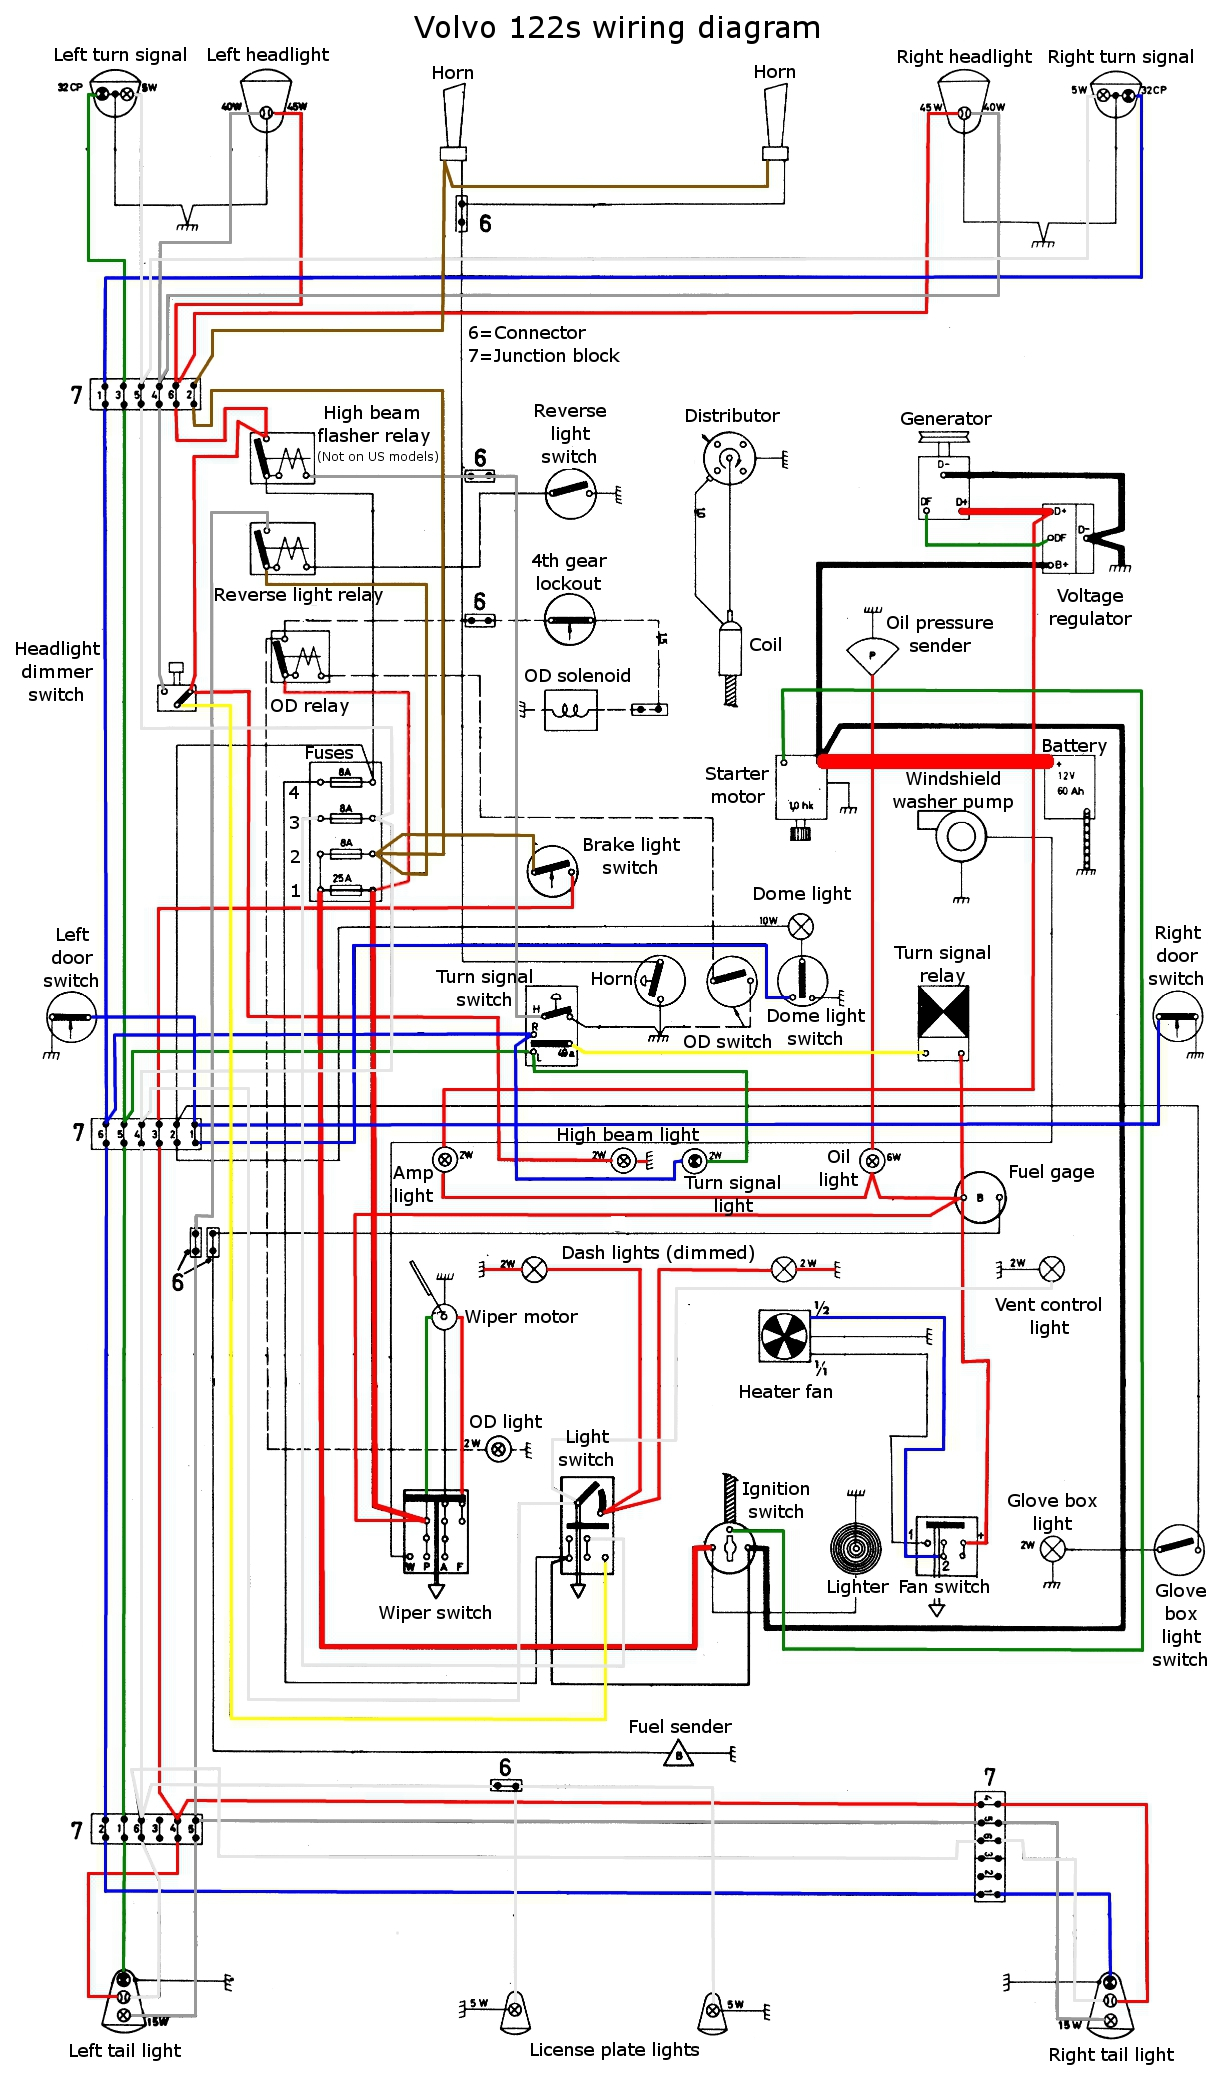 122 wiring diagram color wiring gremlins volvo xc70 wiring diagram at virtualis.co